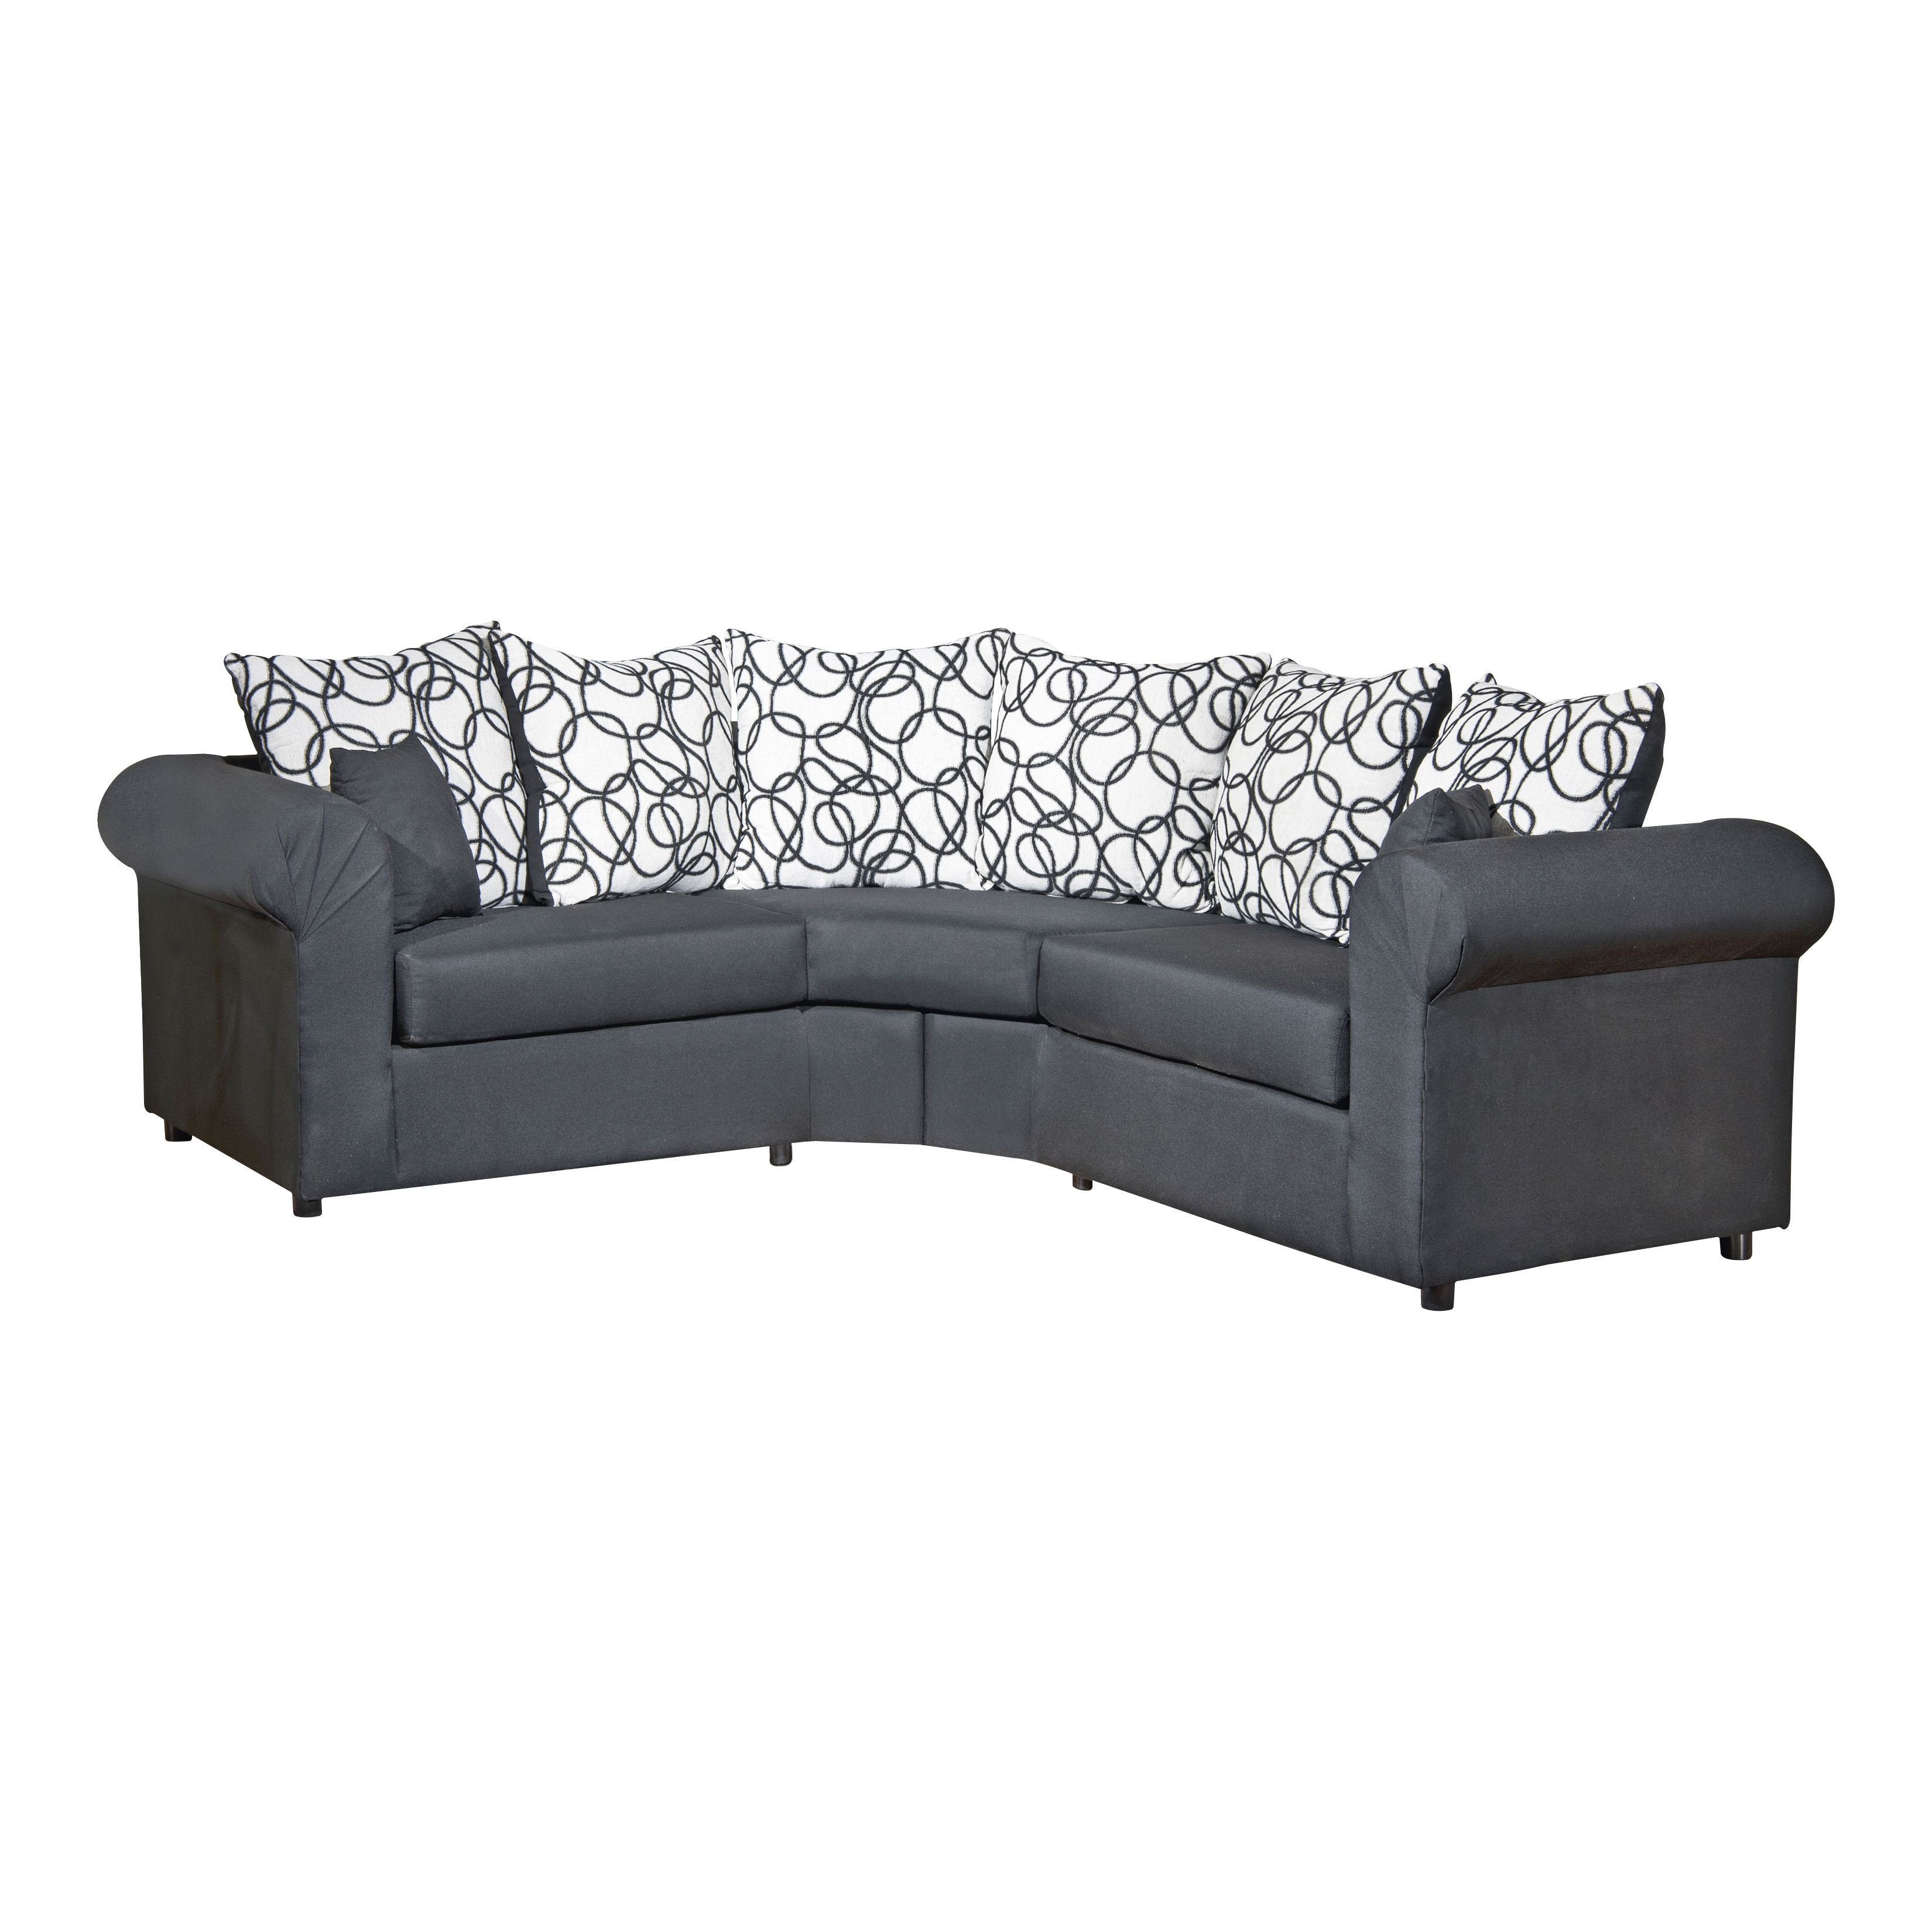 45 Degree Sectional Sofa Sofa Menzilperde Pertaining To 45 Degree Sectional Sofa (#5 of 12)